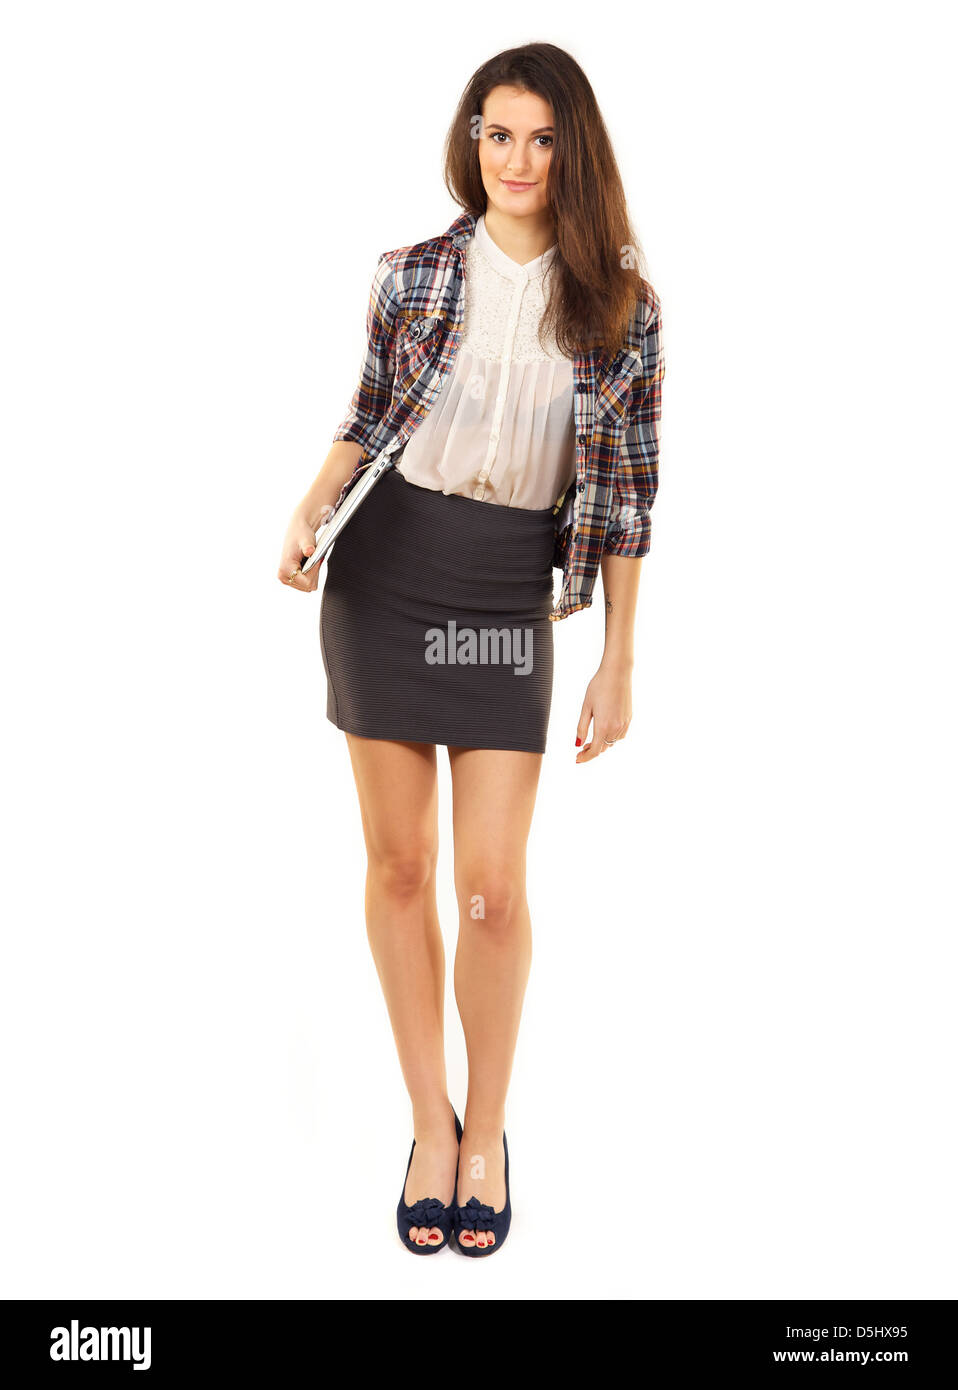 Full length of a beautiful college student with laptop standing against the white background Stock Photo